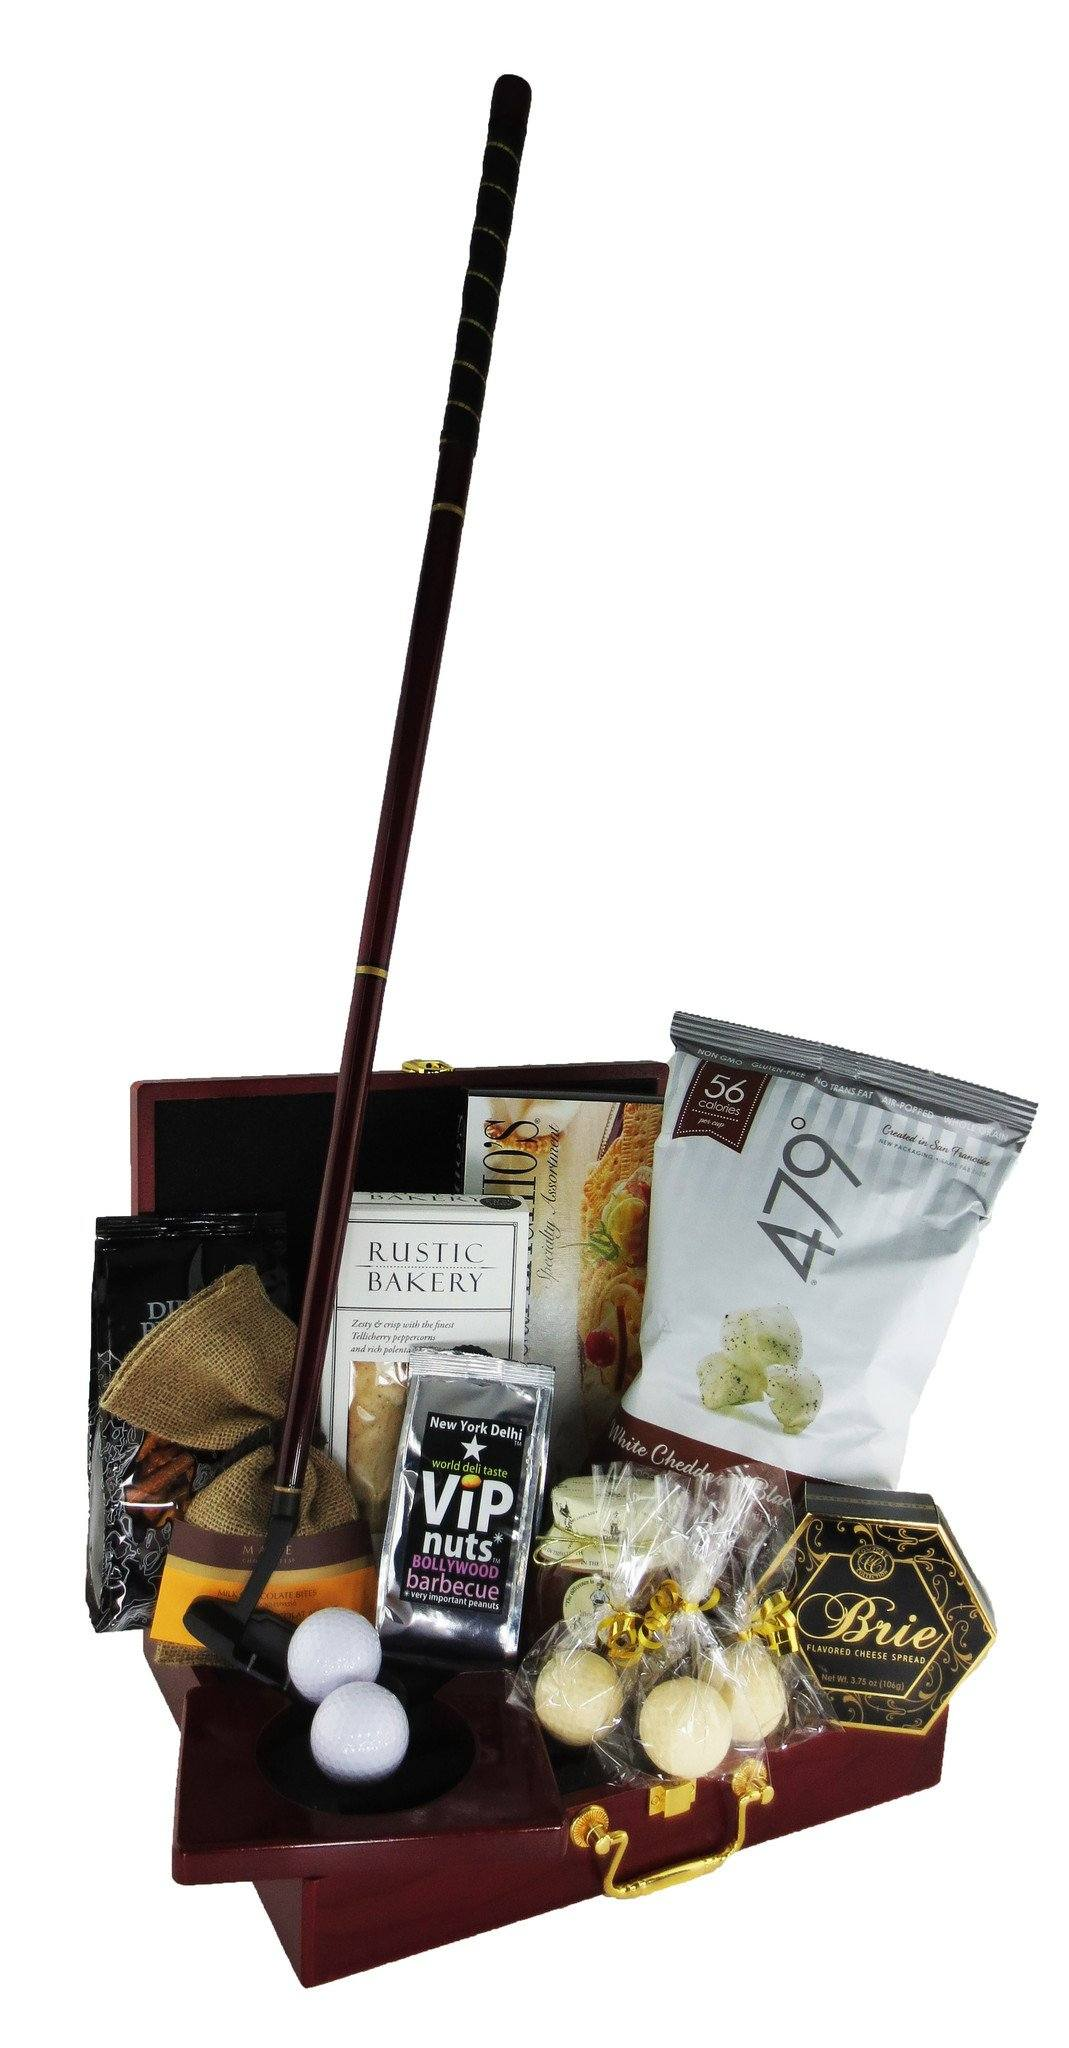 Executive Golf Putting Set Gift Basket